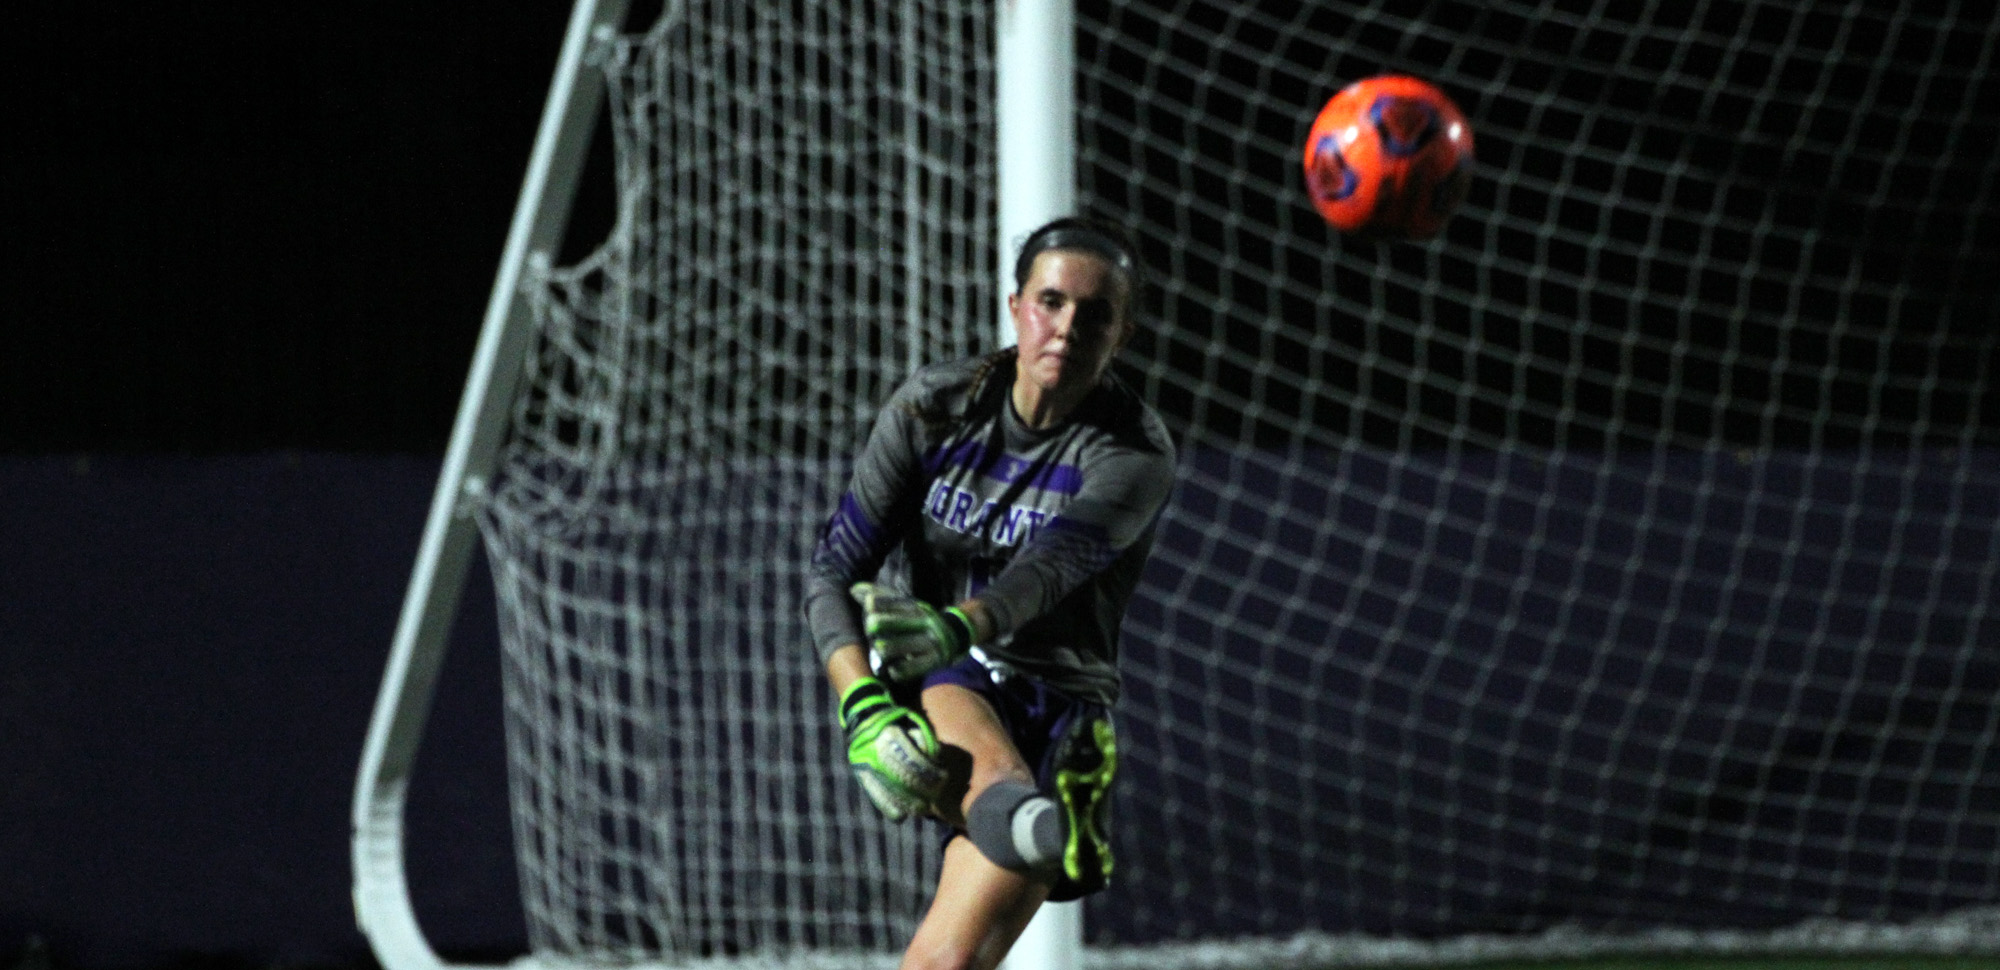 Senior goalkeeper Colleen Berry made a season-high 10 saves against 11th-ranked Christopher Newport on Sunday night.